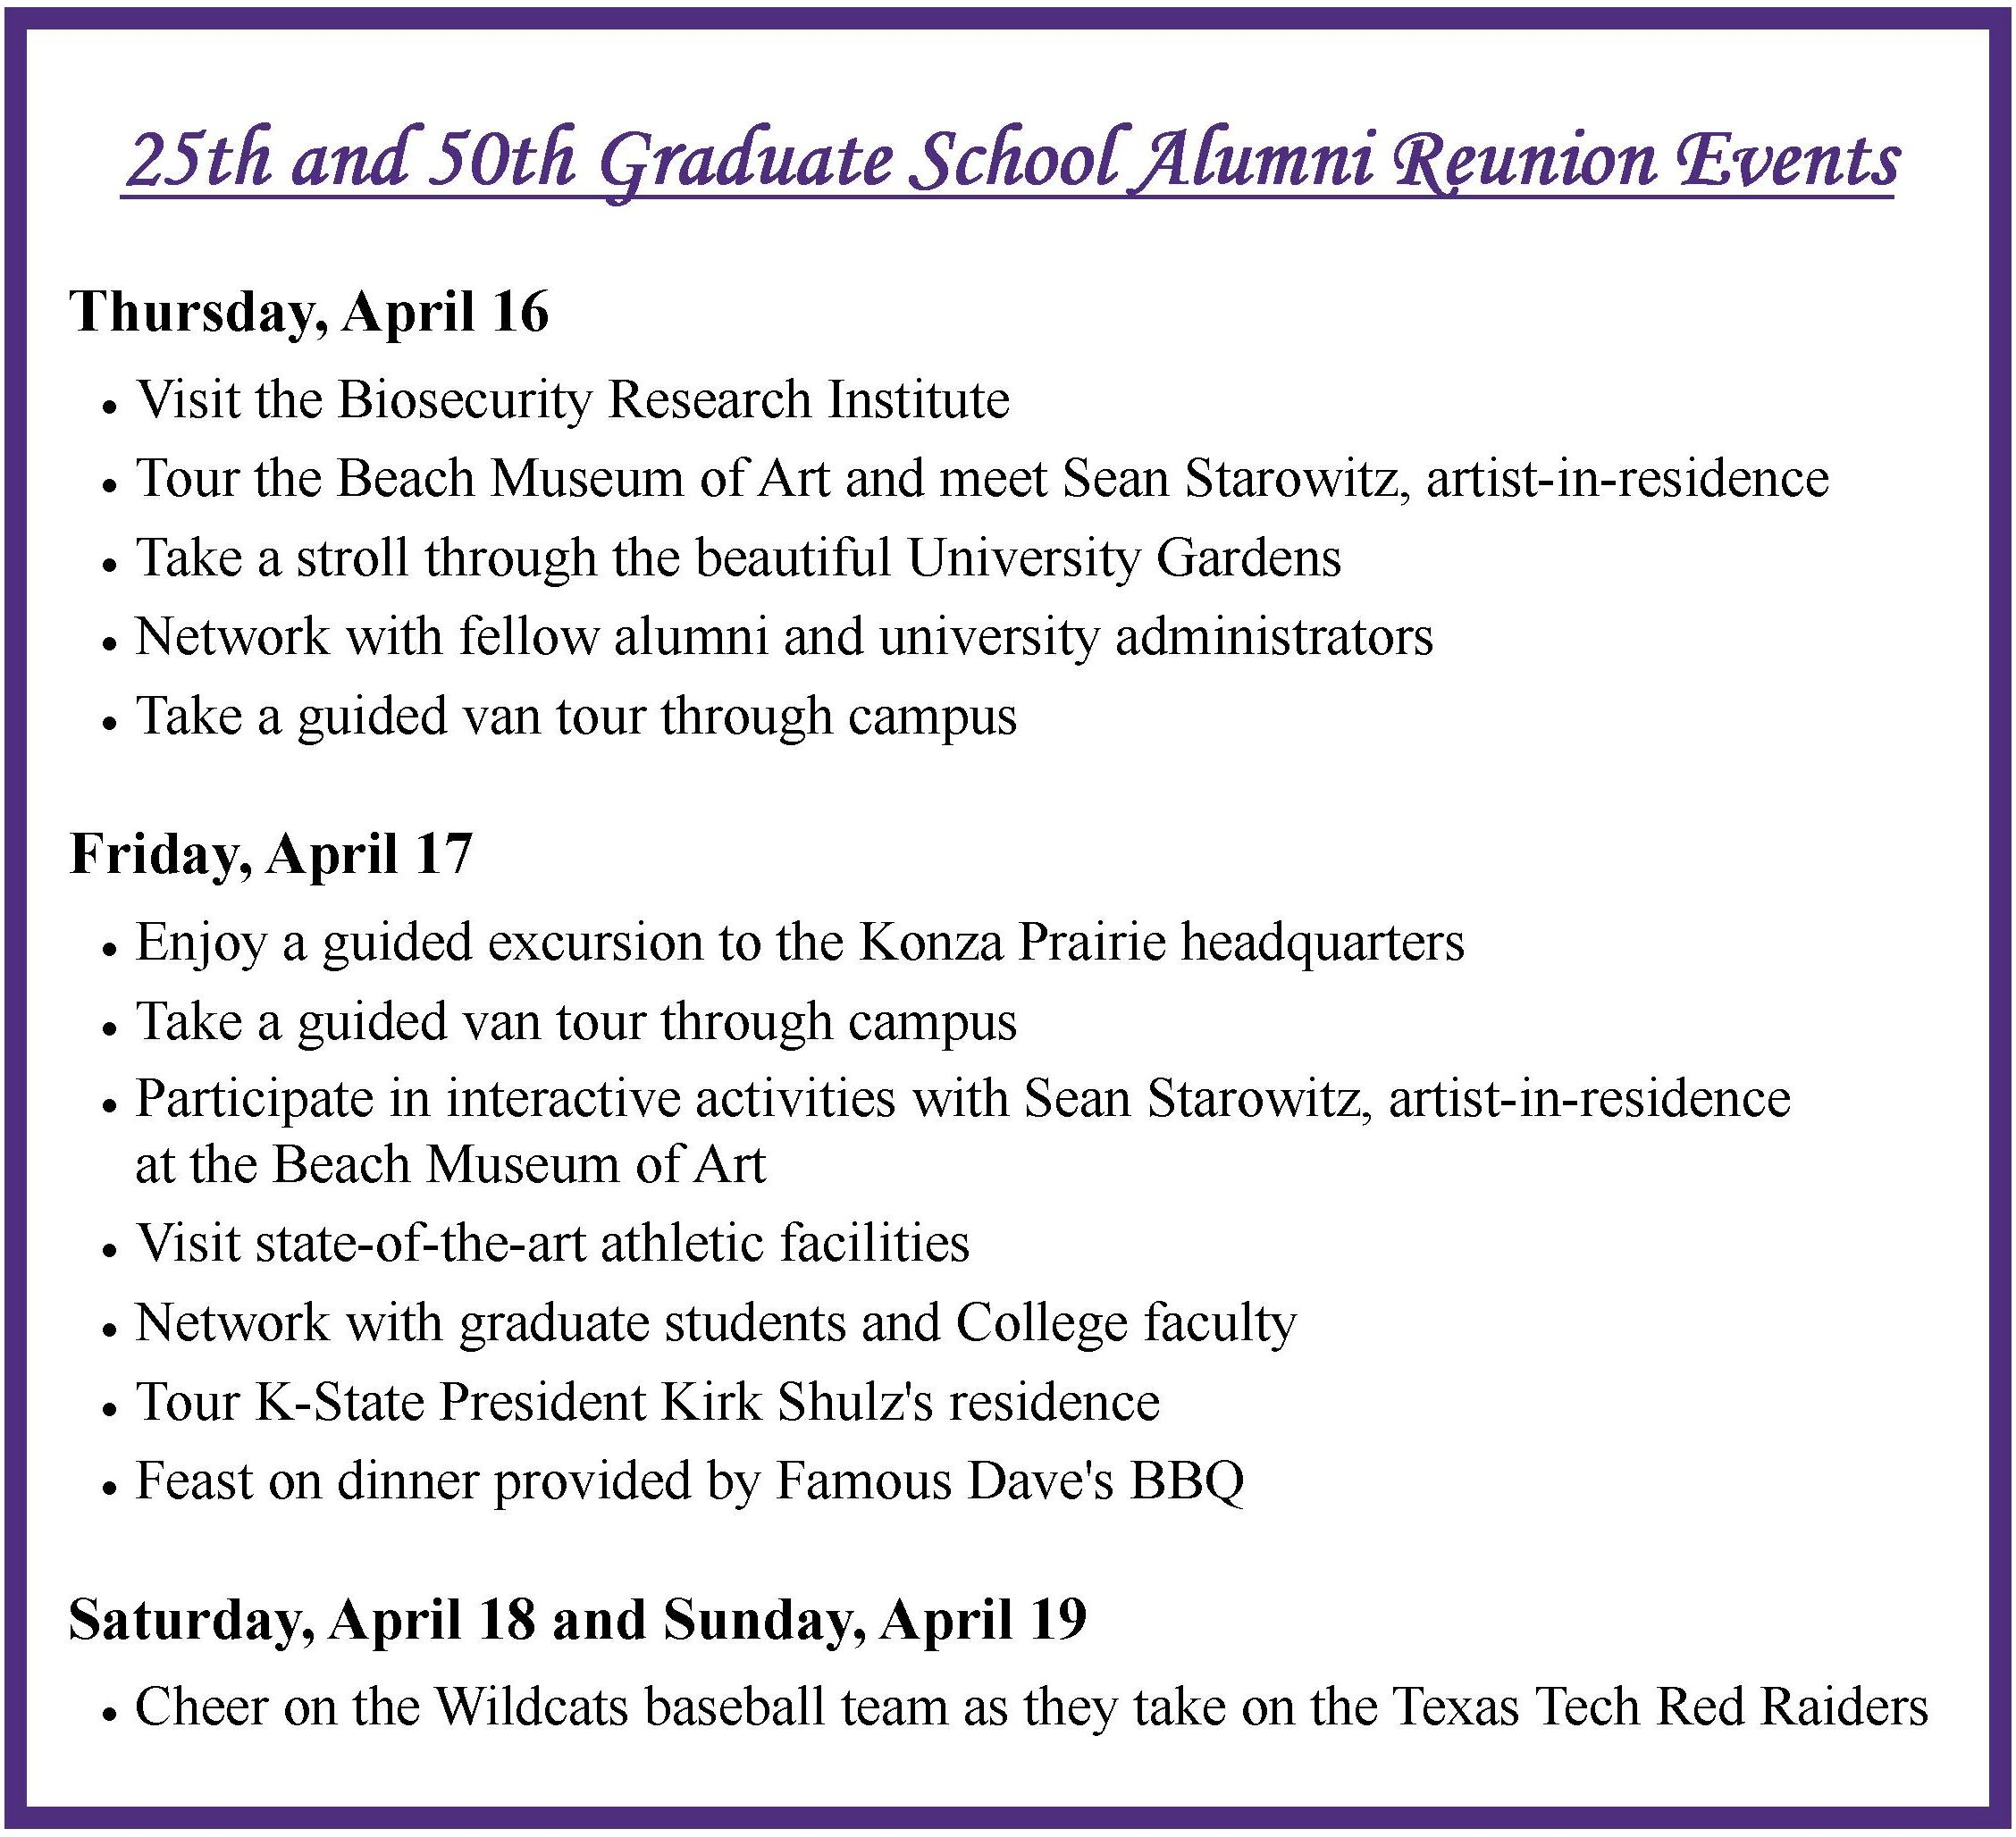 Alumni Reunion schedule for e-newsletter